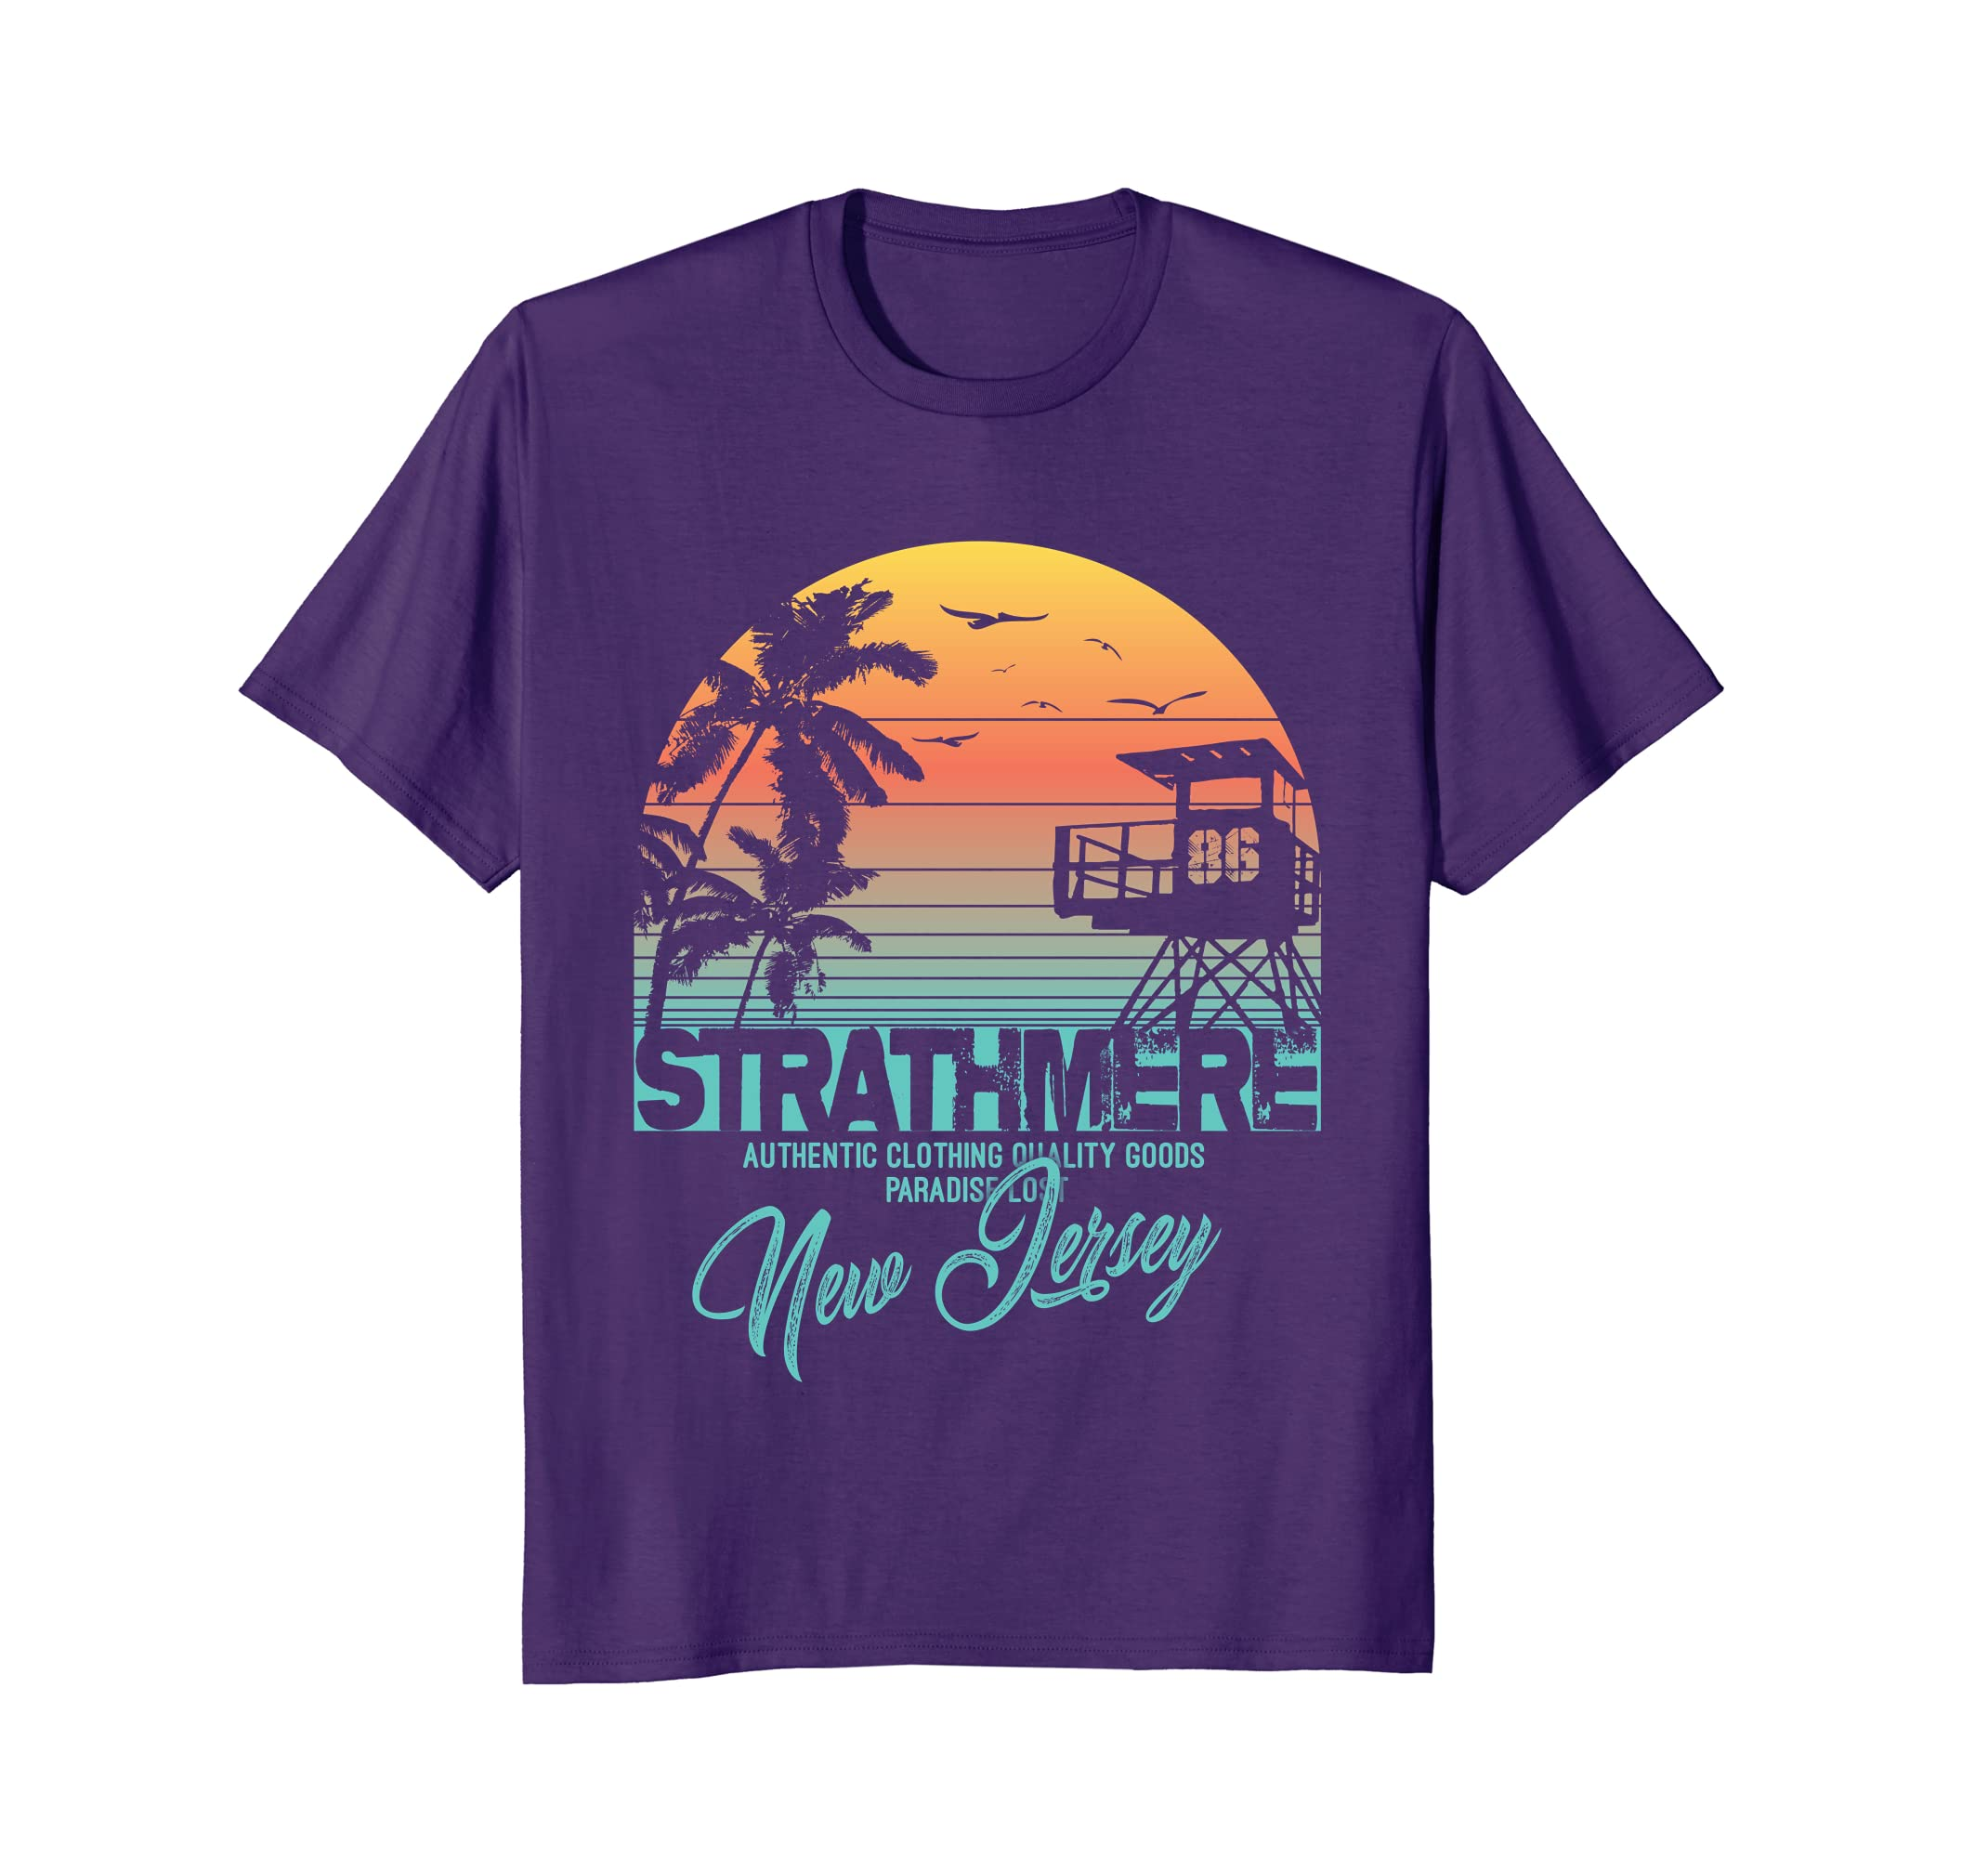 eceac1724 Amazon.com: strathmere New Jersey beach shirt upper twp: Clothing